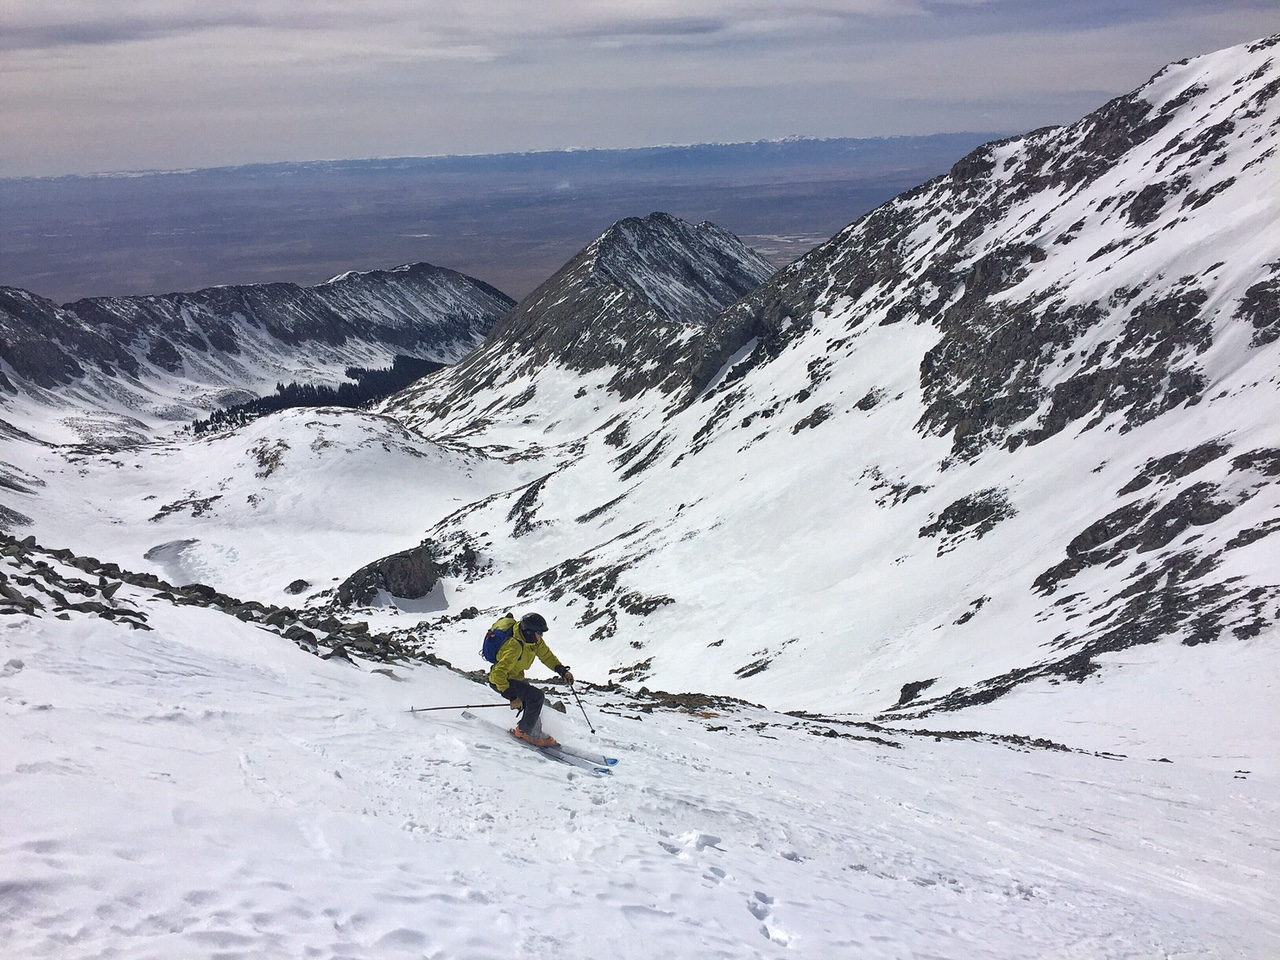 Cruising down Blanca and into the basin below. It was my third peak skied in 3 days.